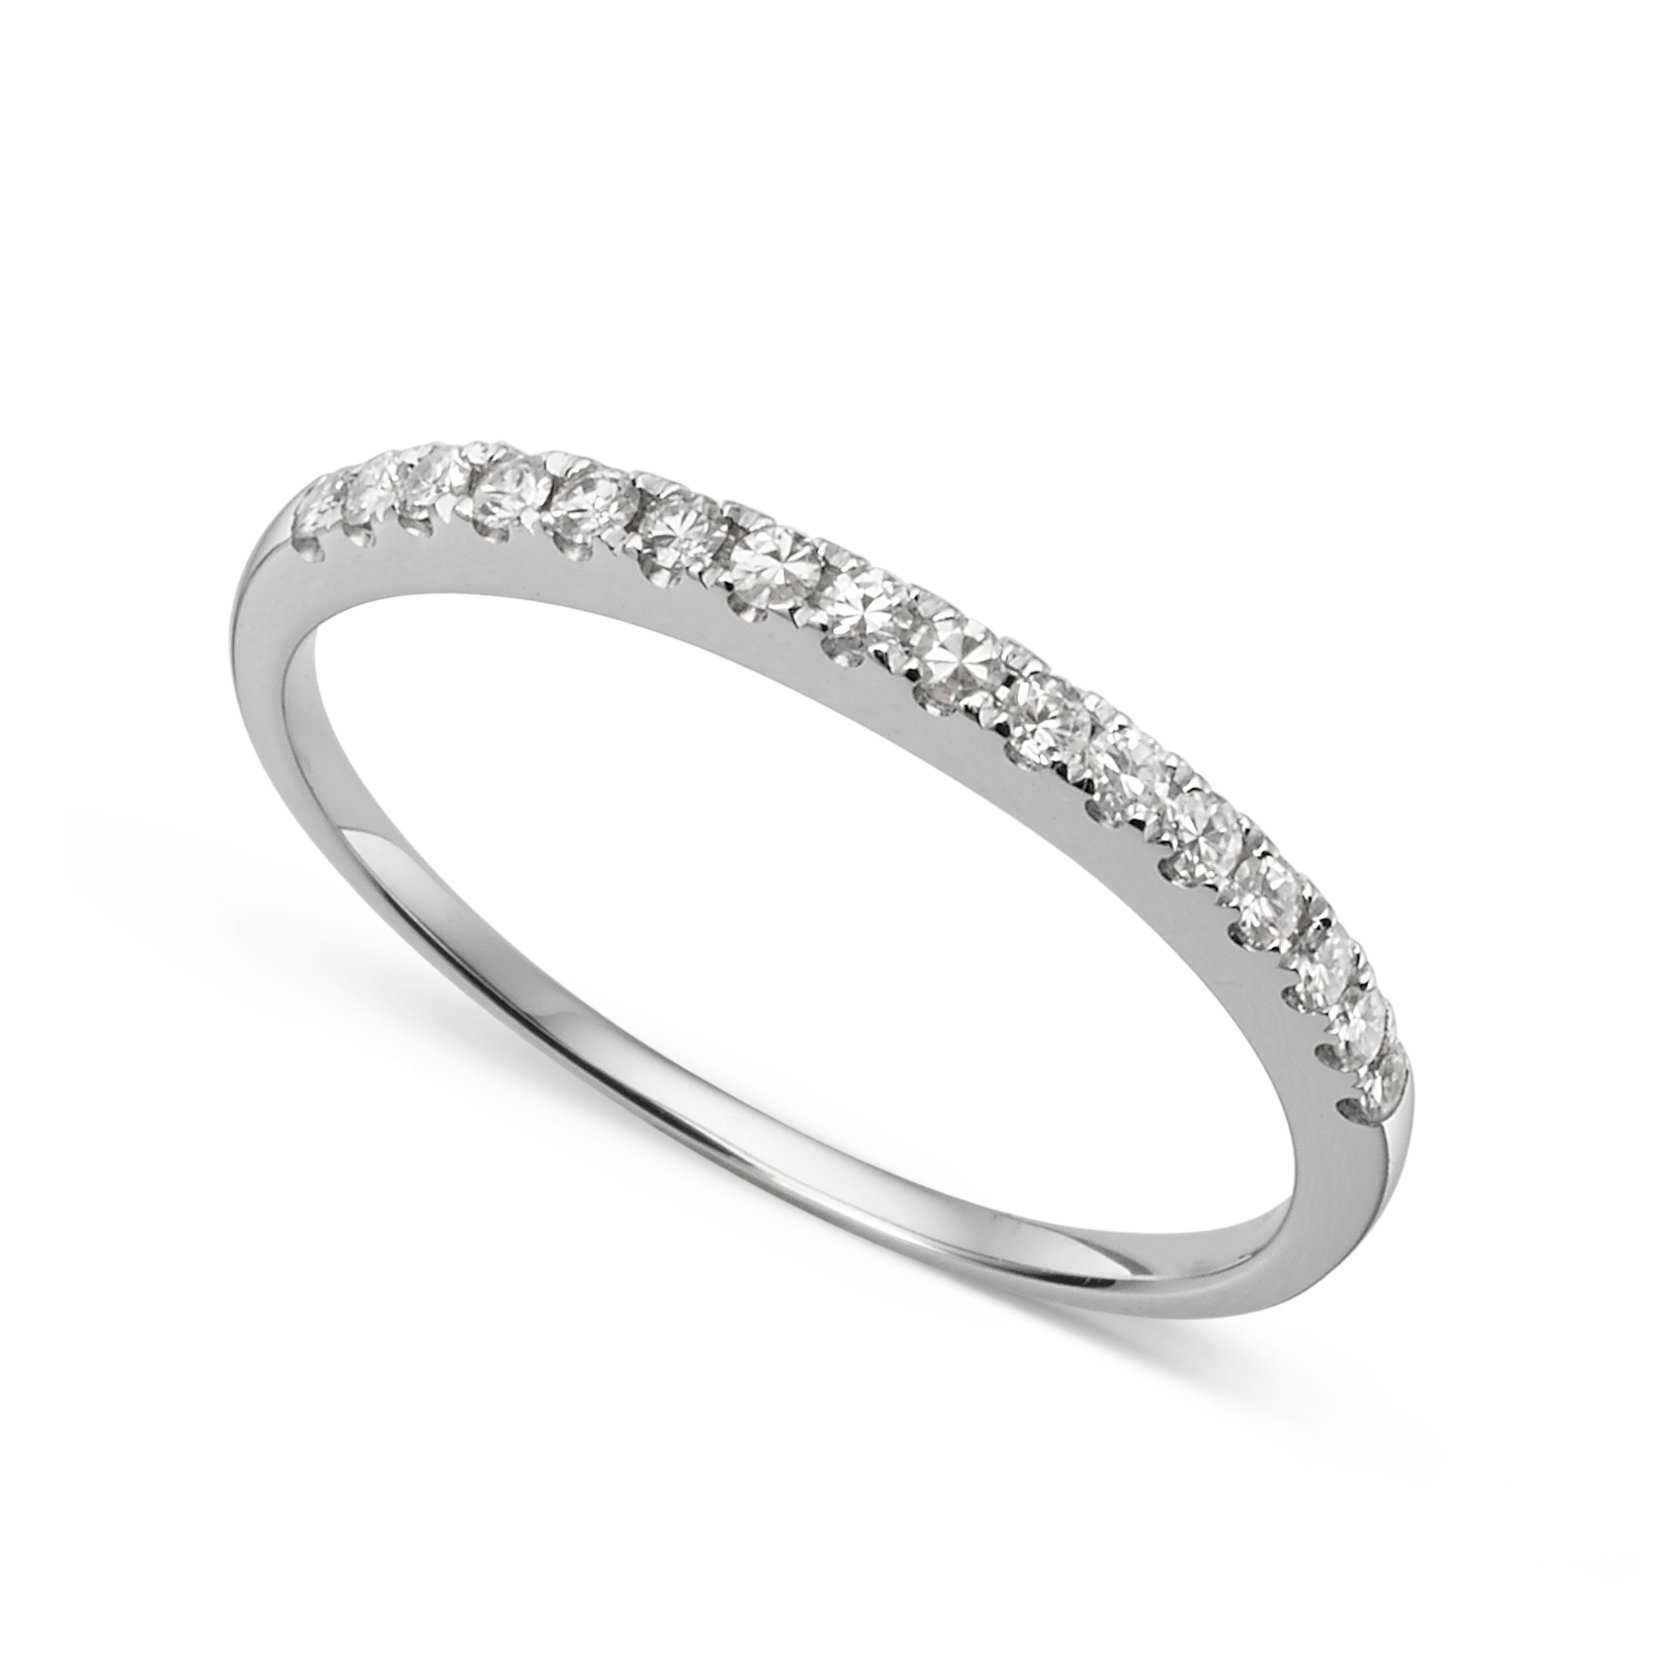 14k White Gold 1.3mm Round Forever Classic Moissanite Wedding Band Ring Size 5 By Charles & Colvard by Charles & Colvard